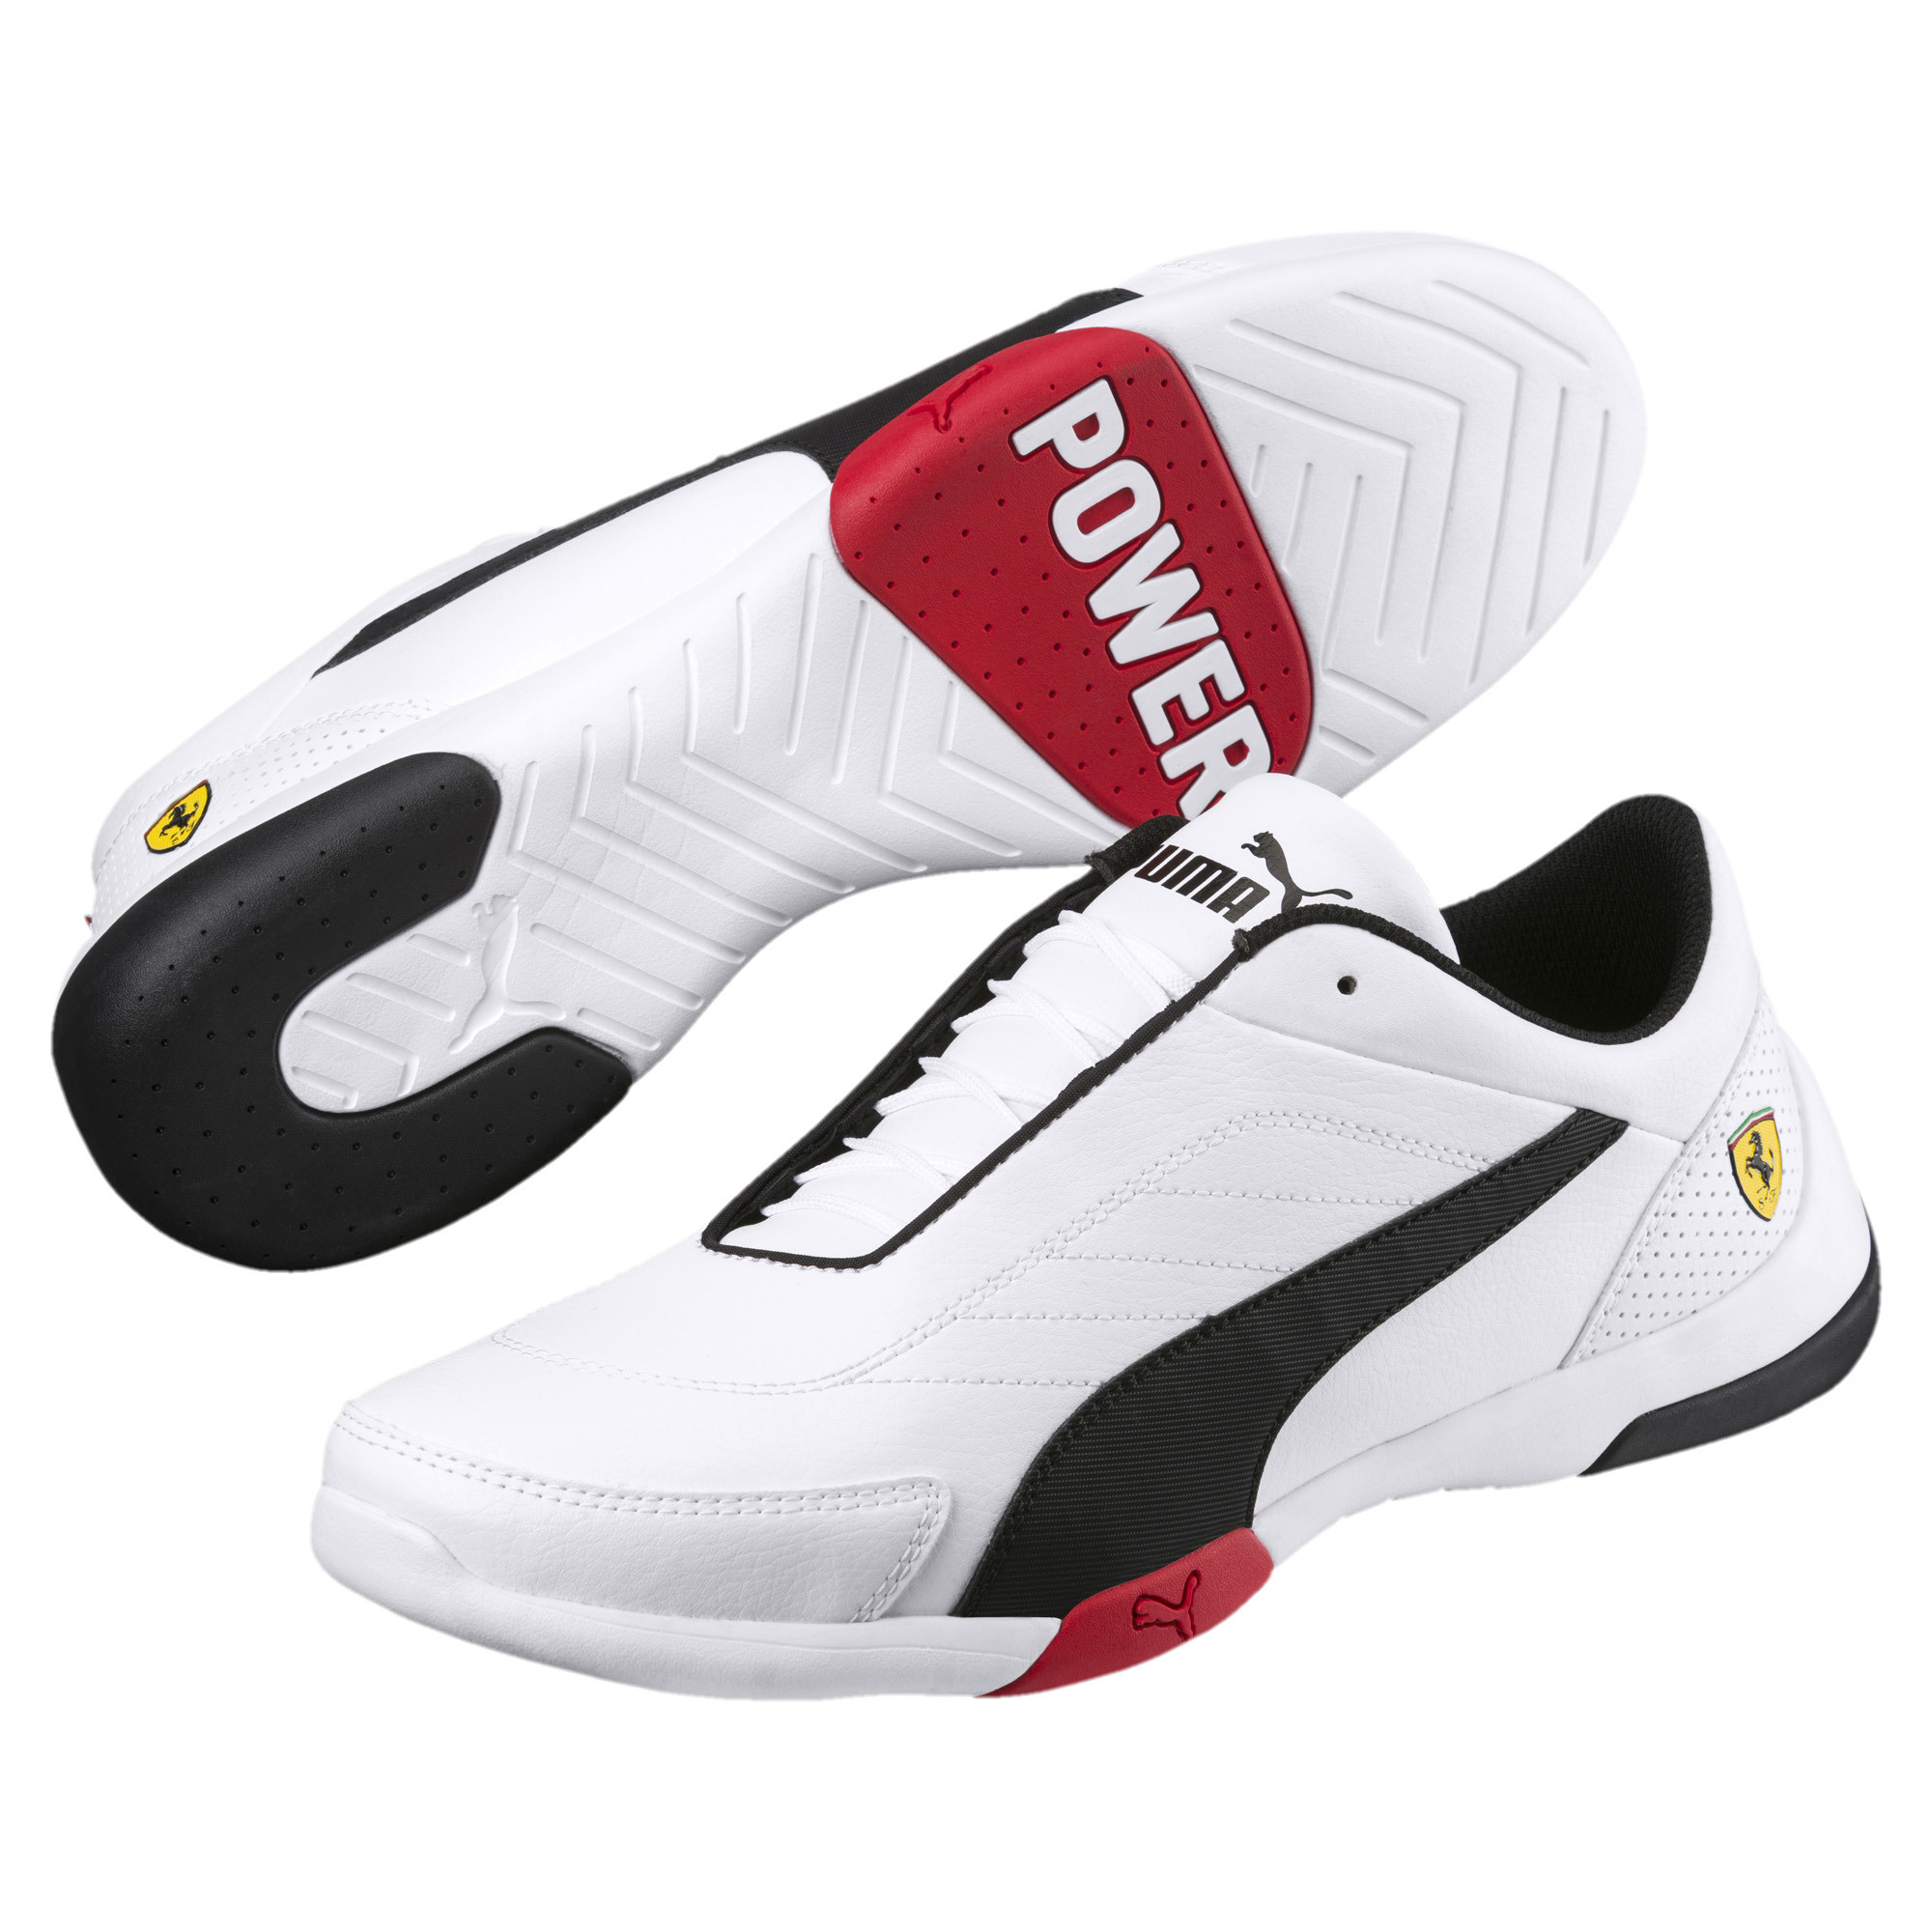 puma ferrari shoes 2018